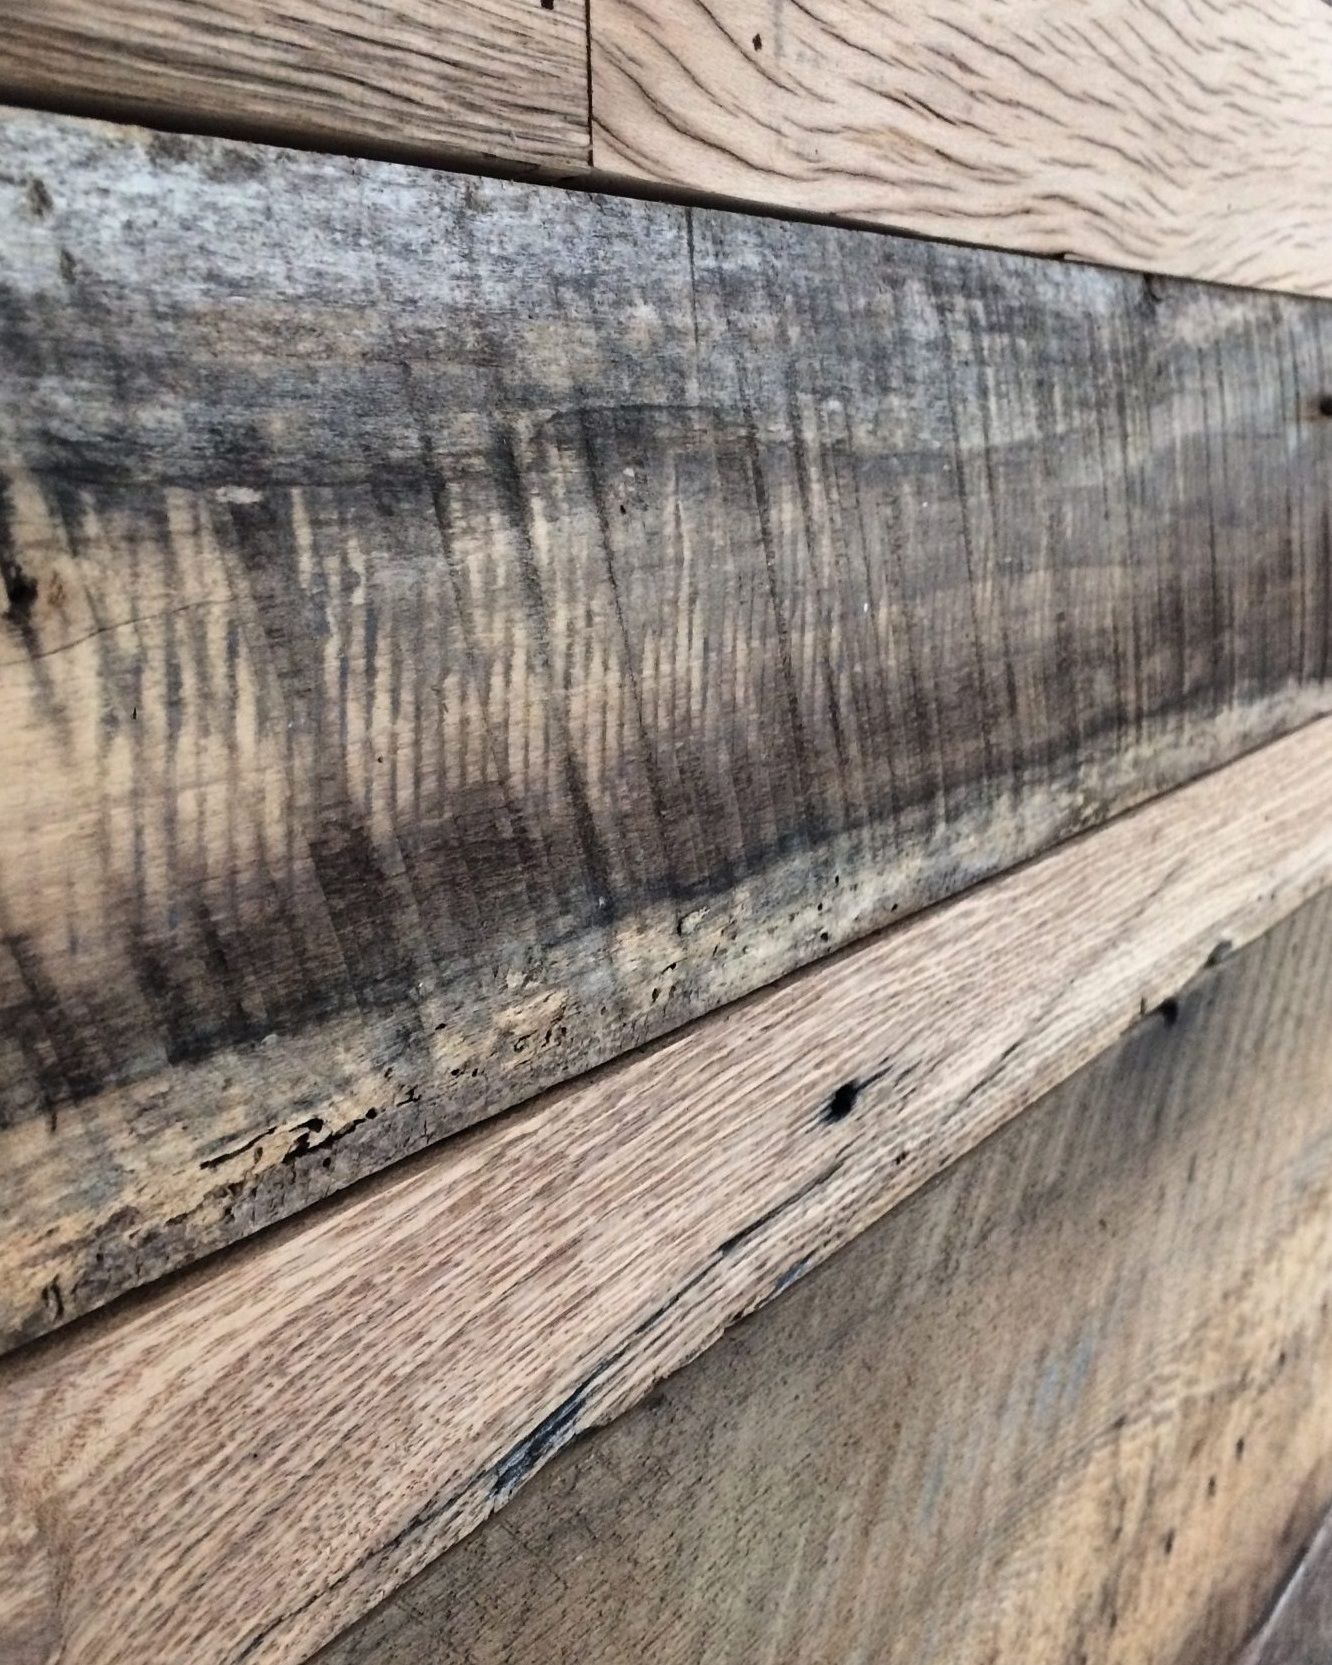 BARN SIDING - Most of our barn siding is black, however we occasionally get red siding.